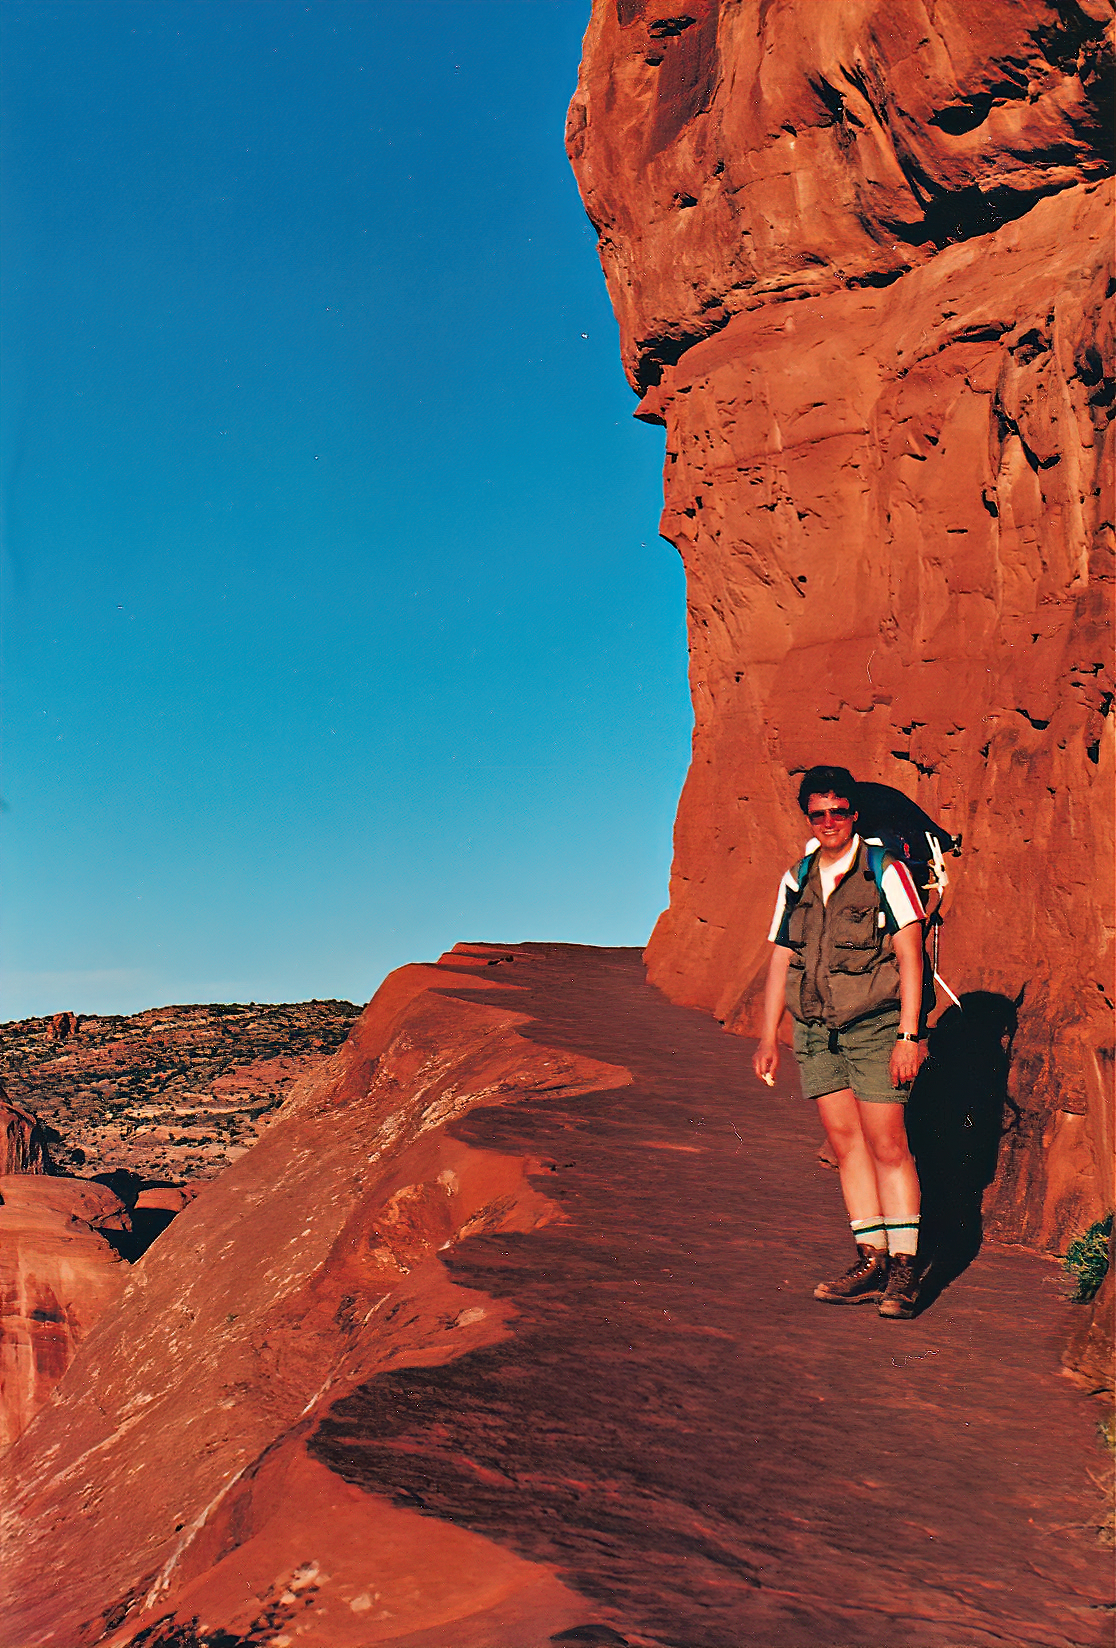 Heat and lack of shade make hiking Delicate Arch challenging.